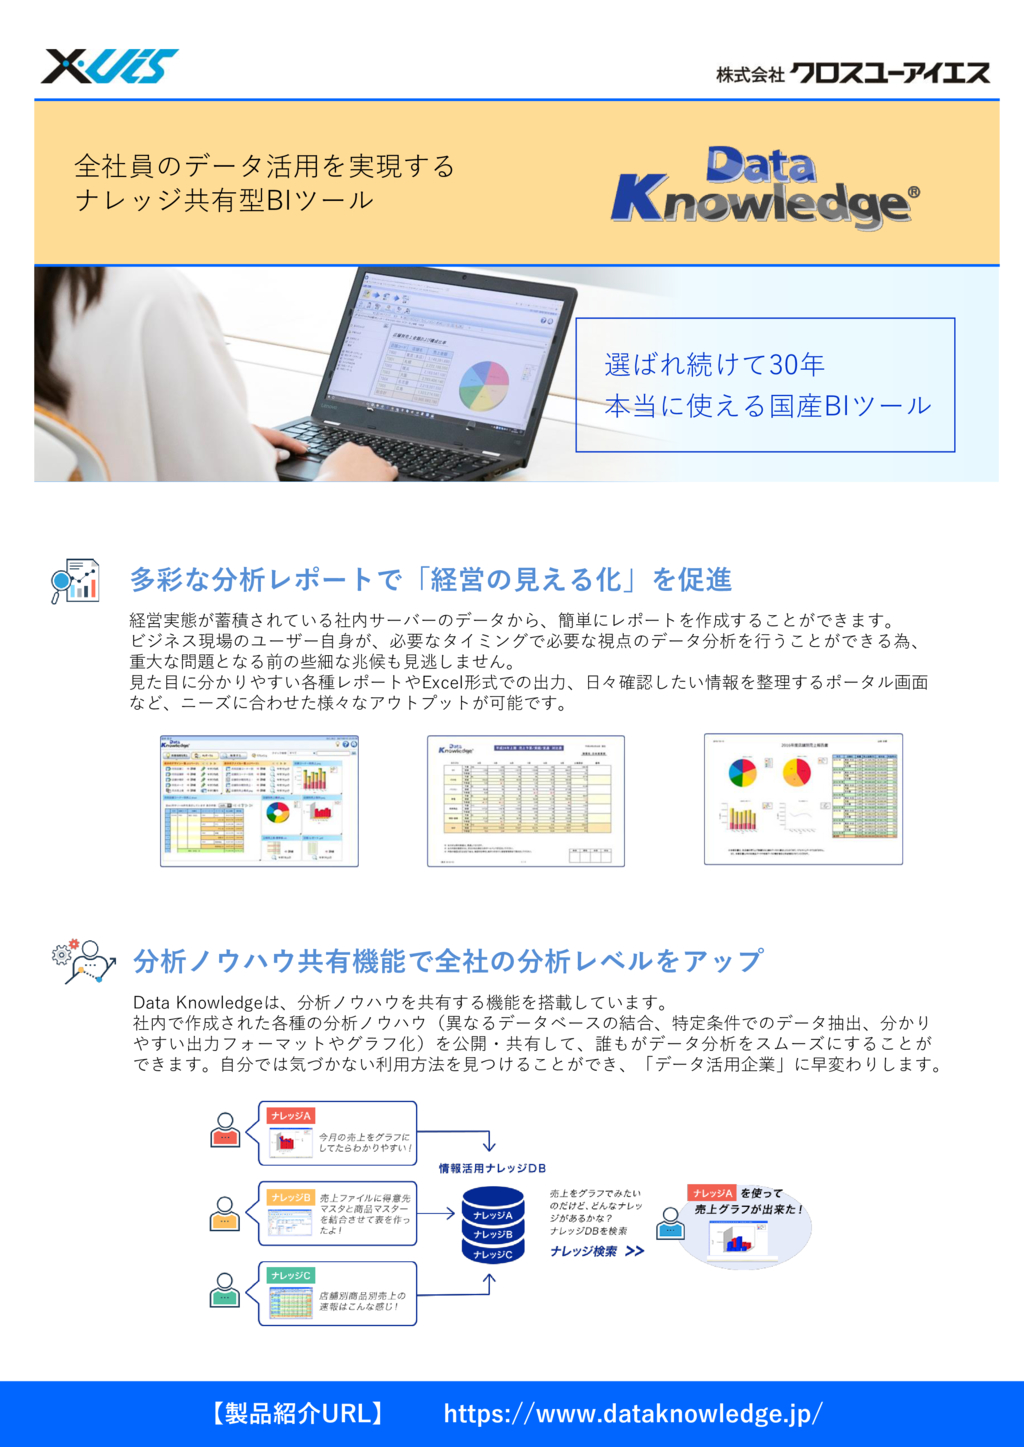 Data Knowledgeの資料